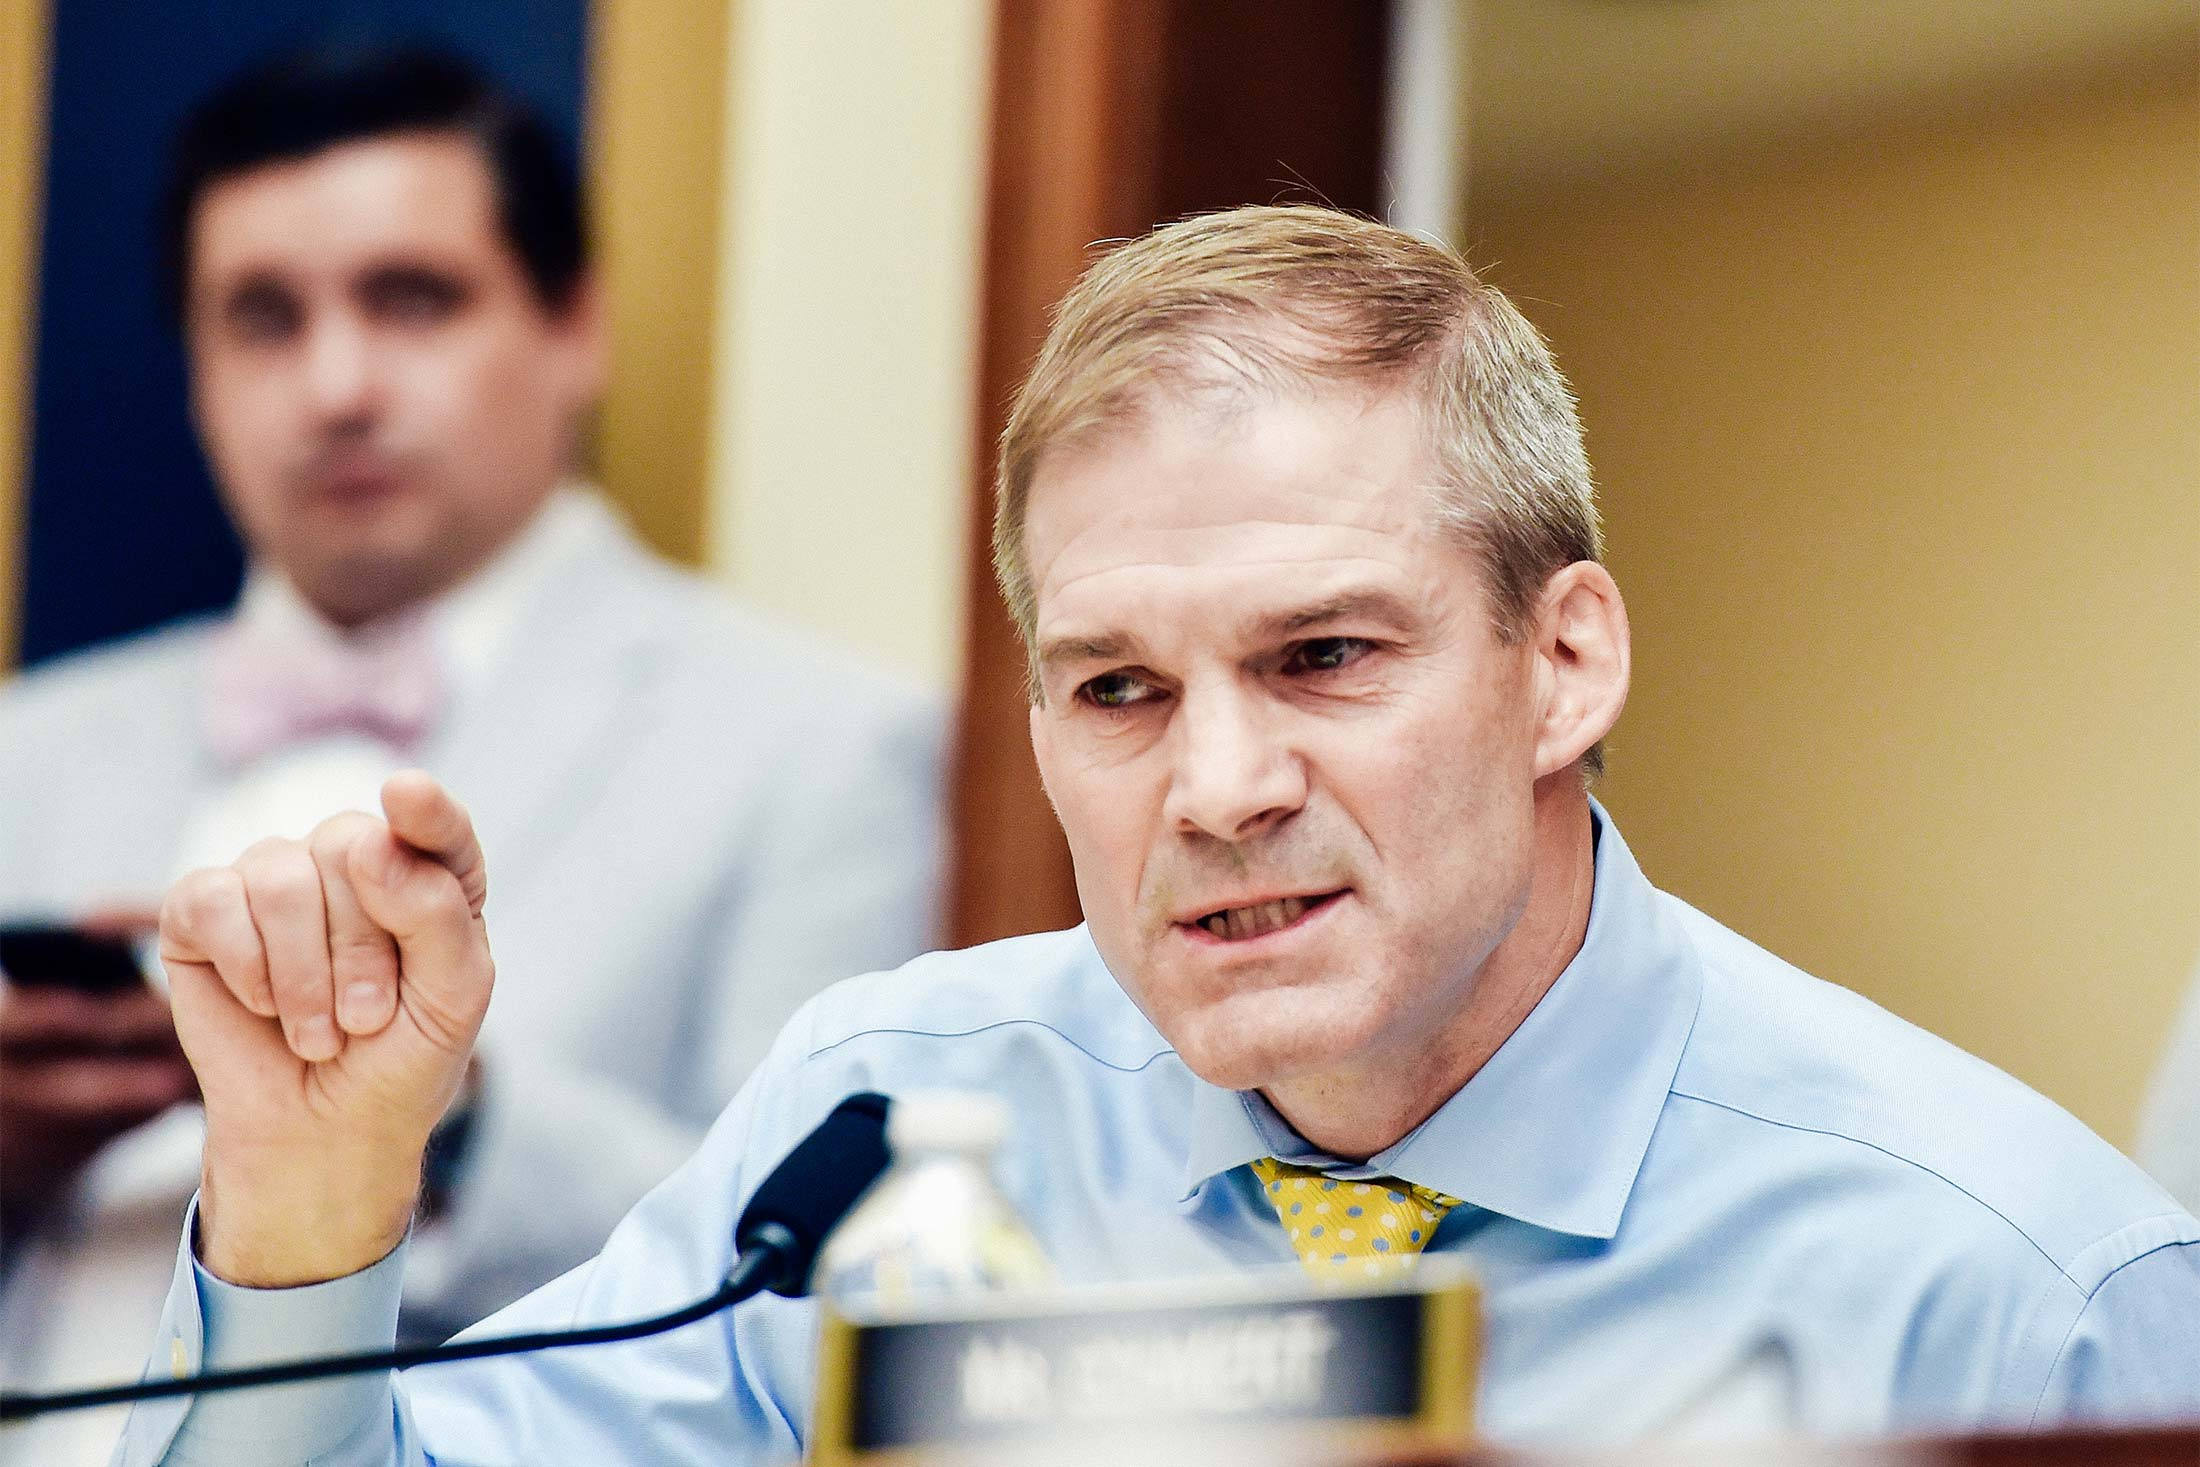 Jim Jordan speaks into a microphone at a hearing.